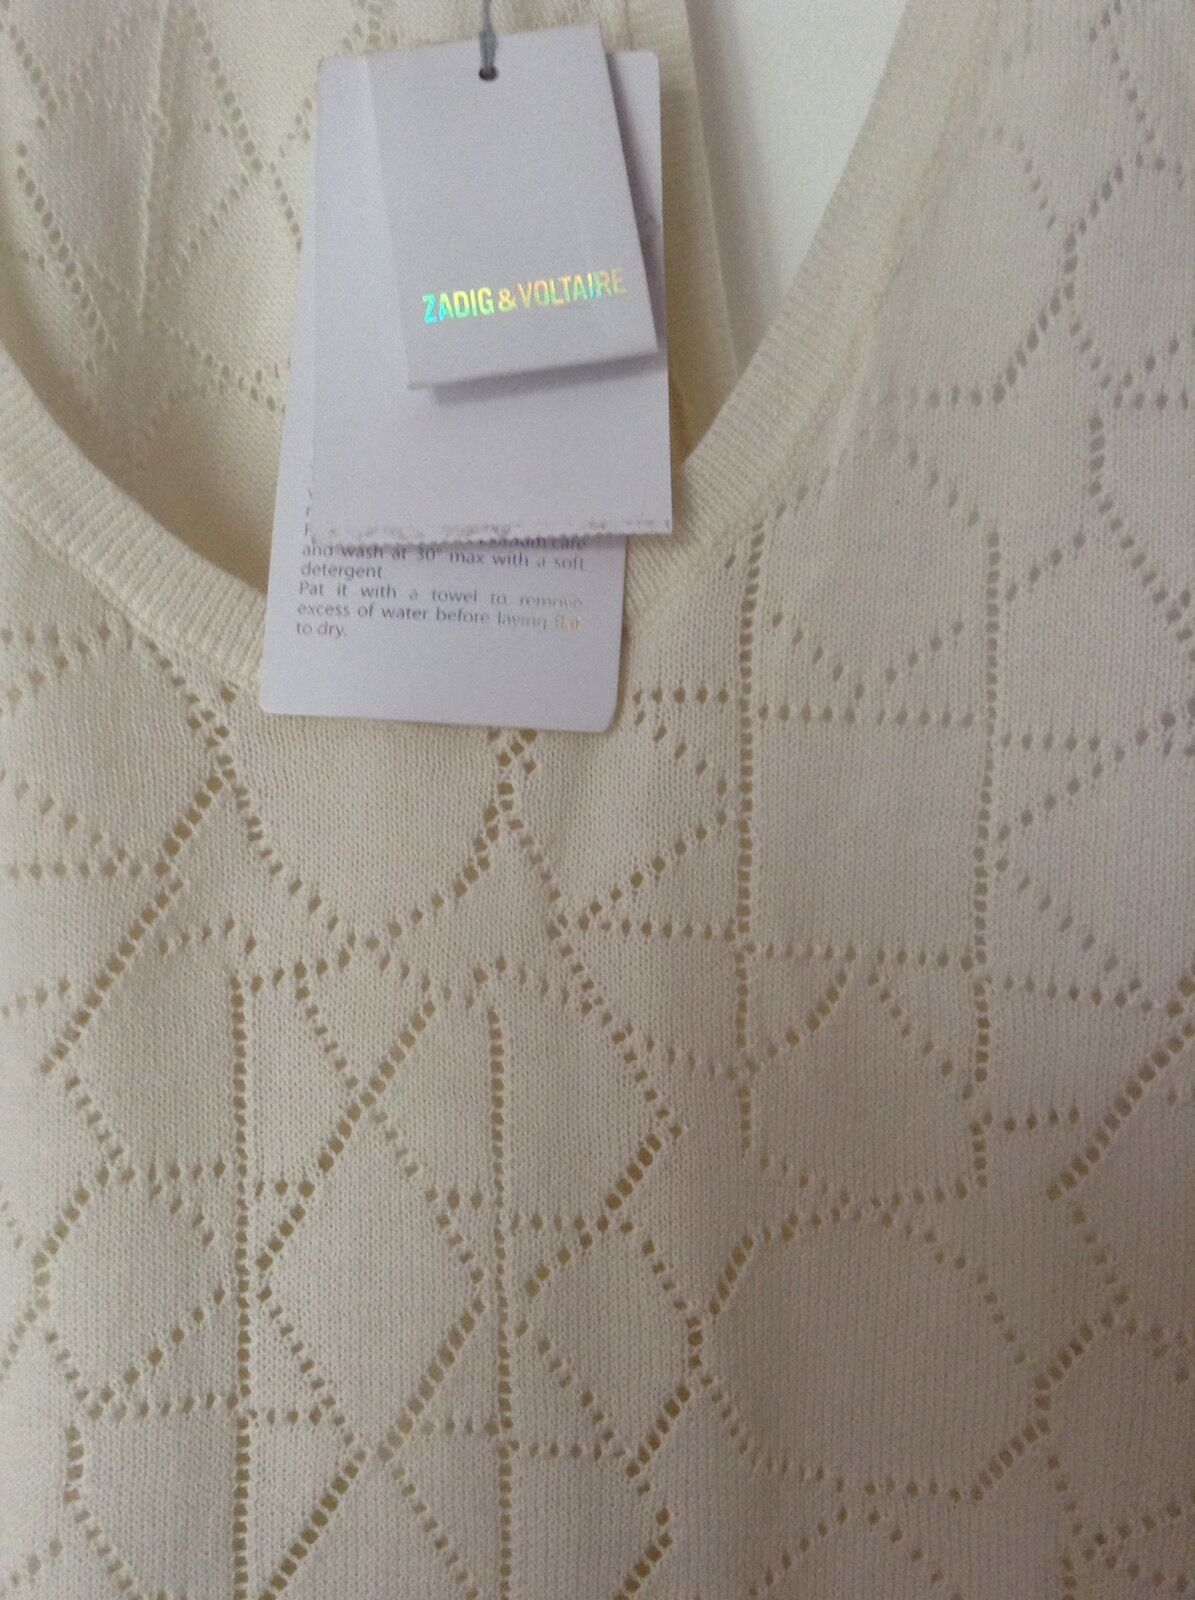 BNWT 100% Auth Zadig & Voltaire, Deby Pointelle Cream Iconic Tank Top M RRP